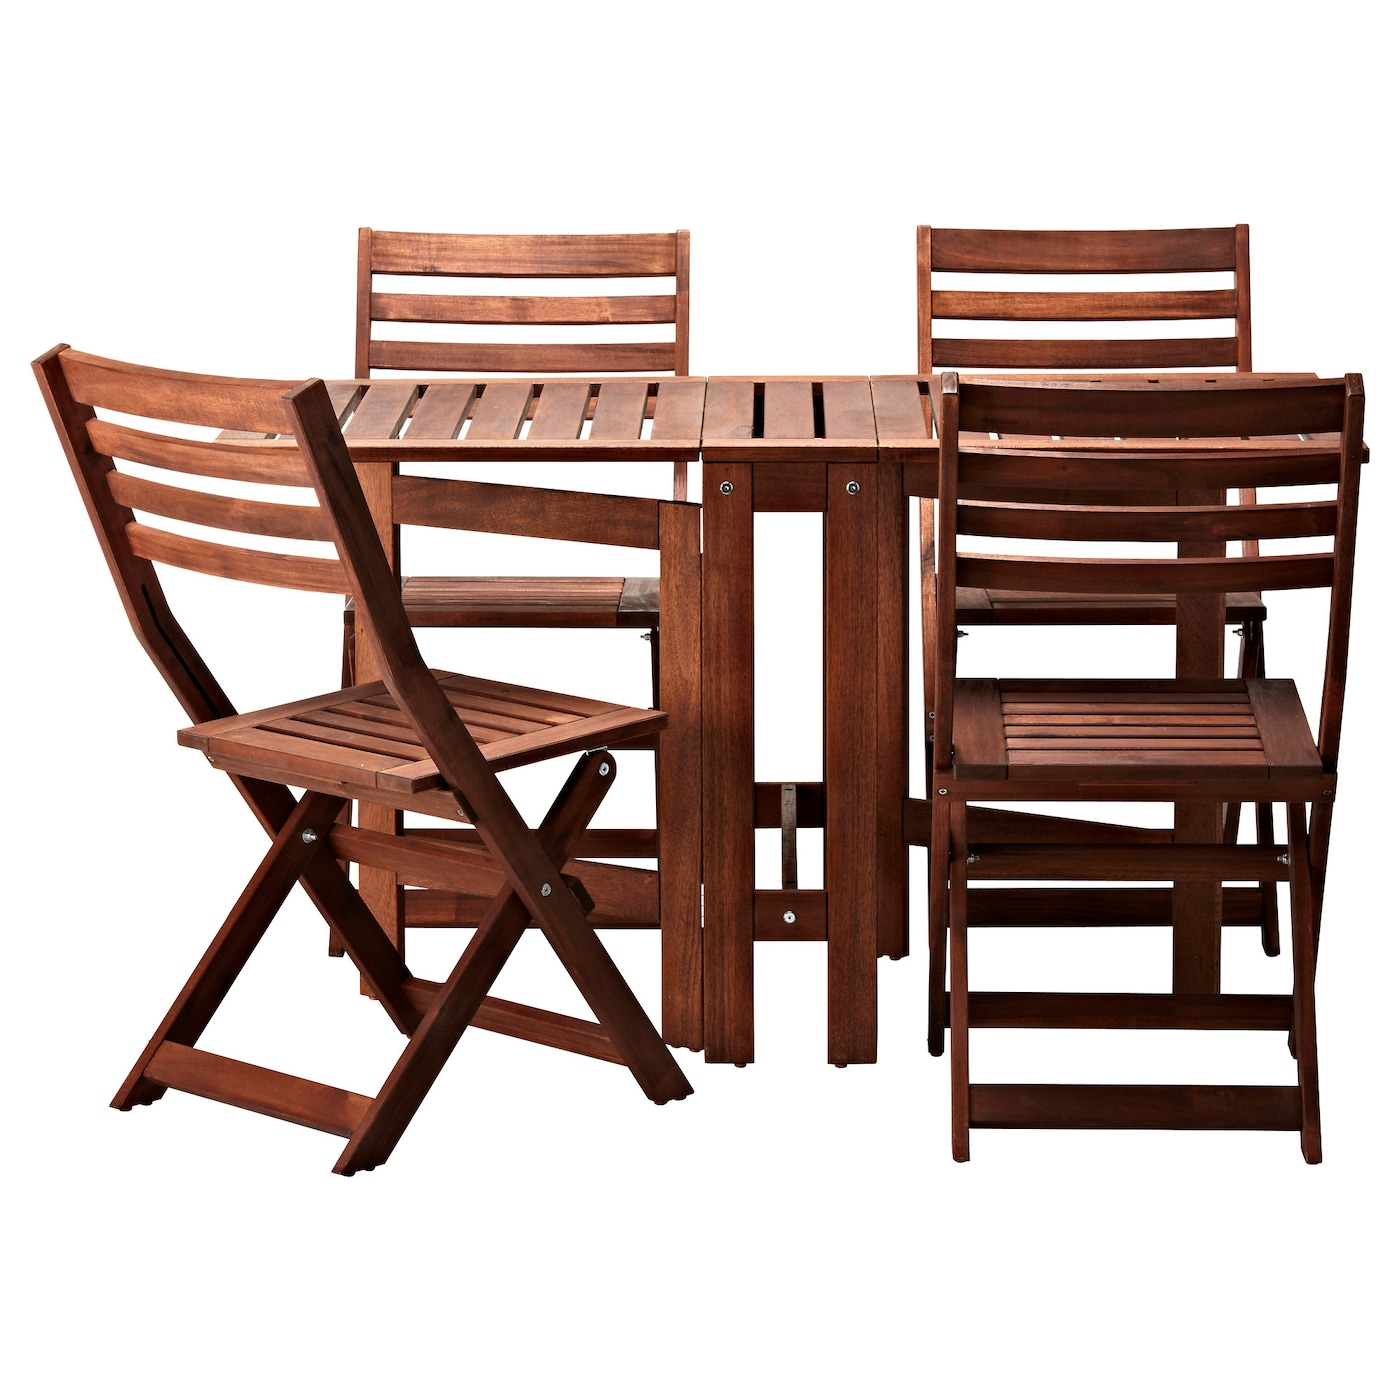 Garden Furniture Tables garden tables & chairs | garden furniture sets | ikea